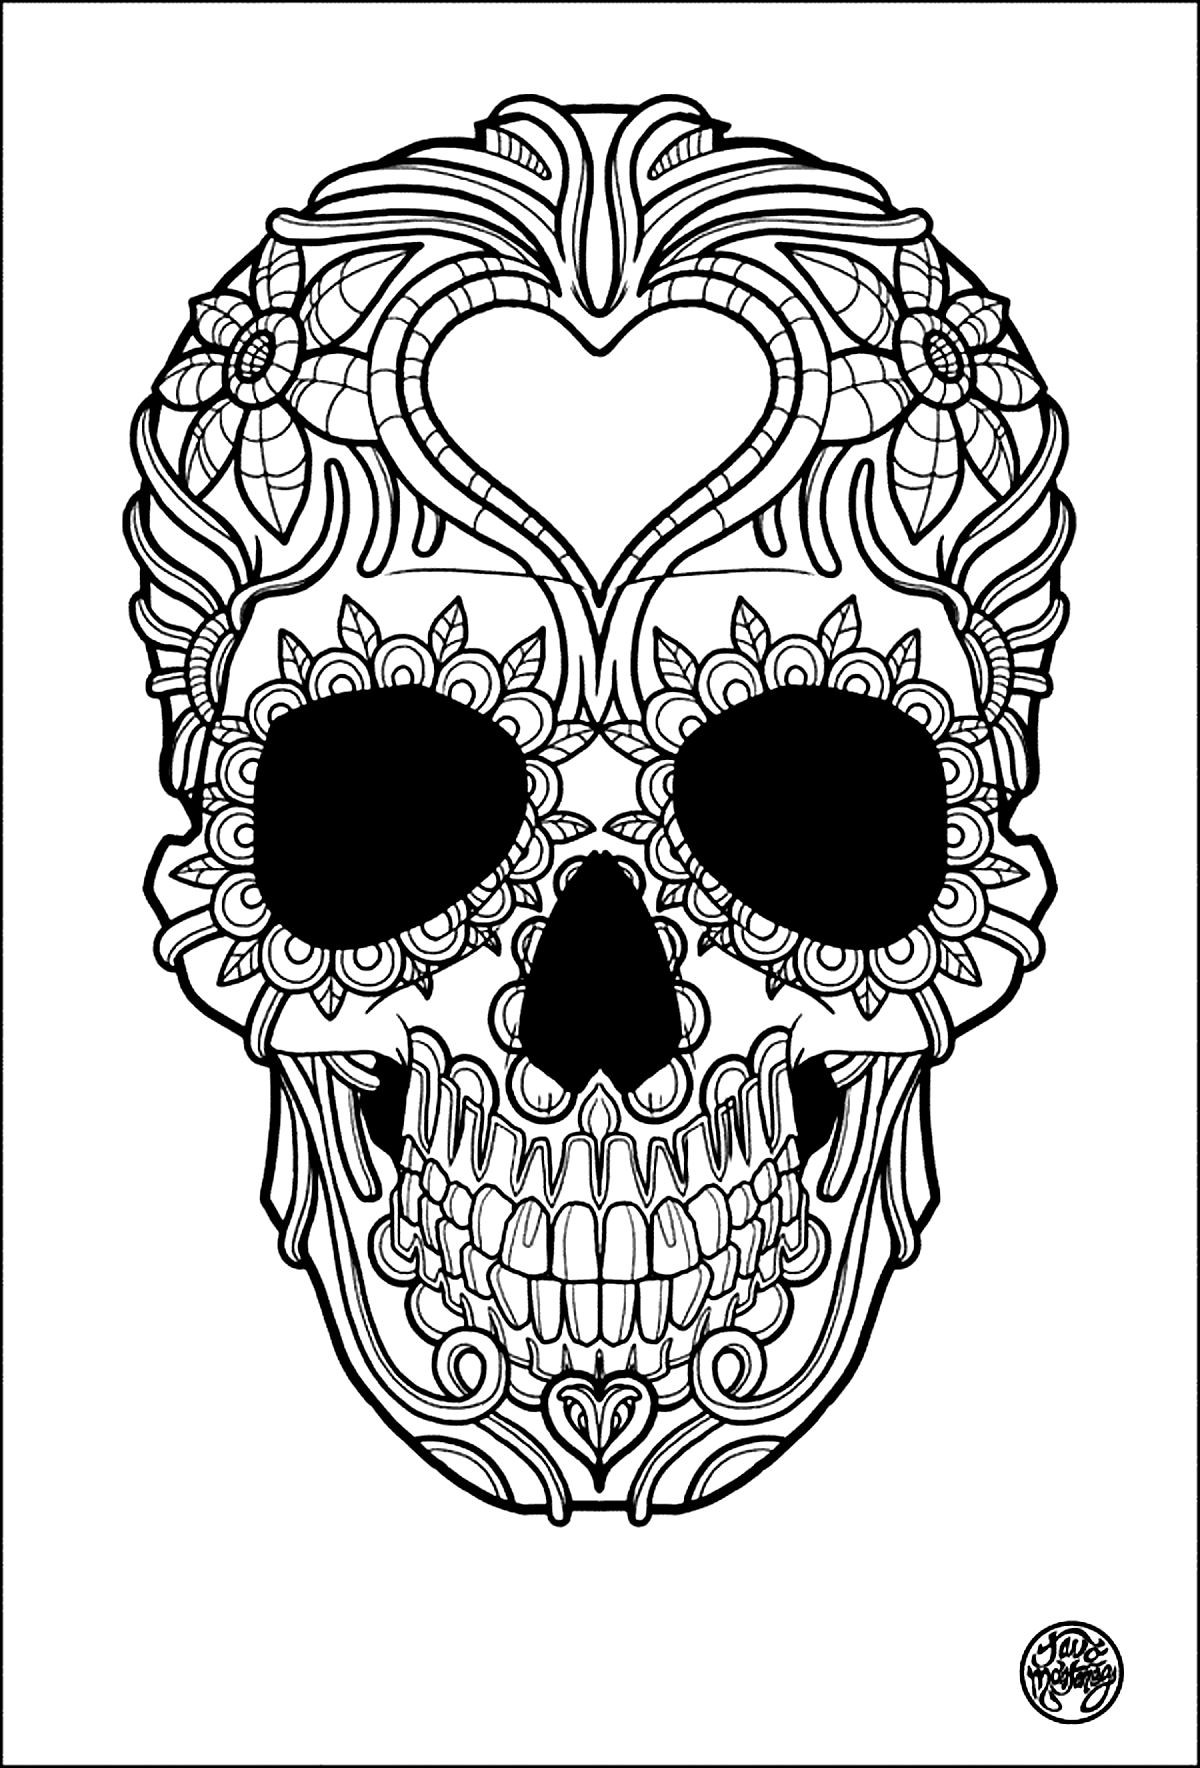 Tattoo Coloring Pages For Adults  Tattoos Coloring pages for adults coloring adult